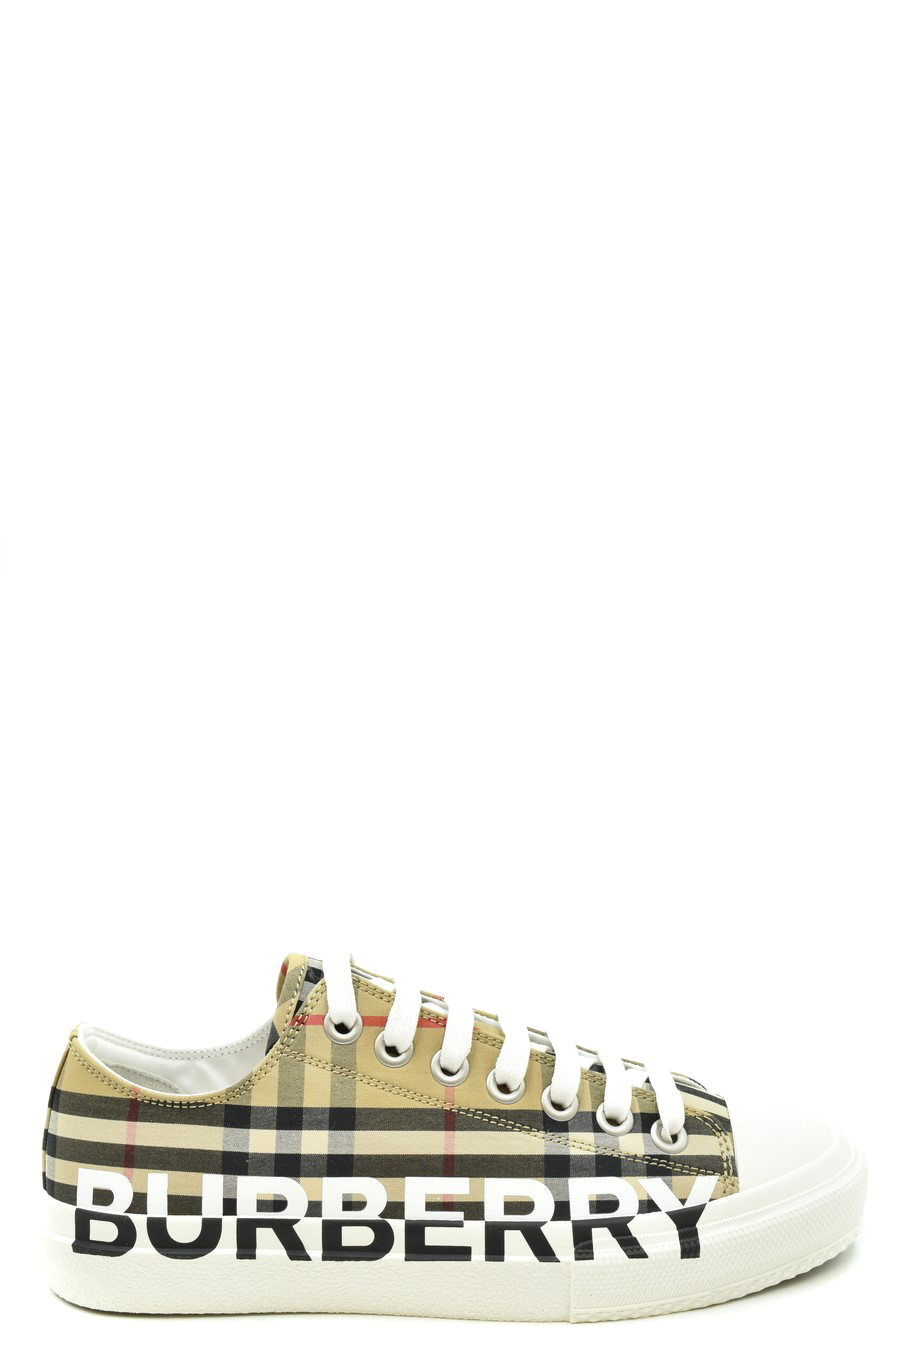 Burberry Canvases SNEAKER